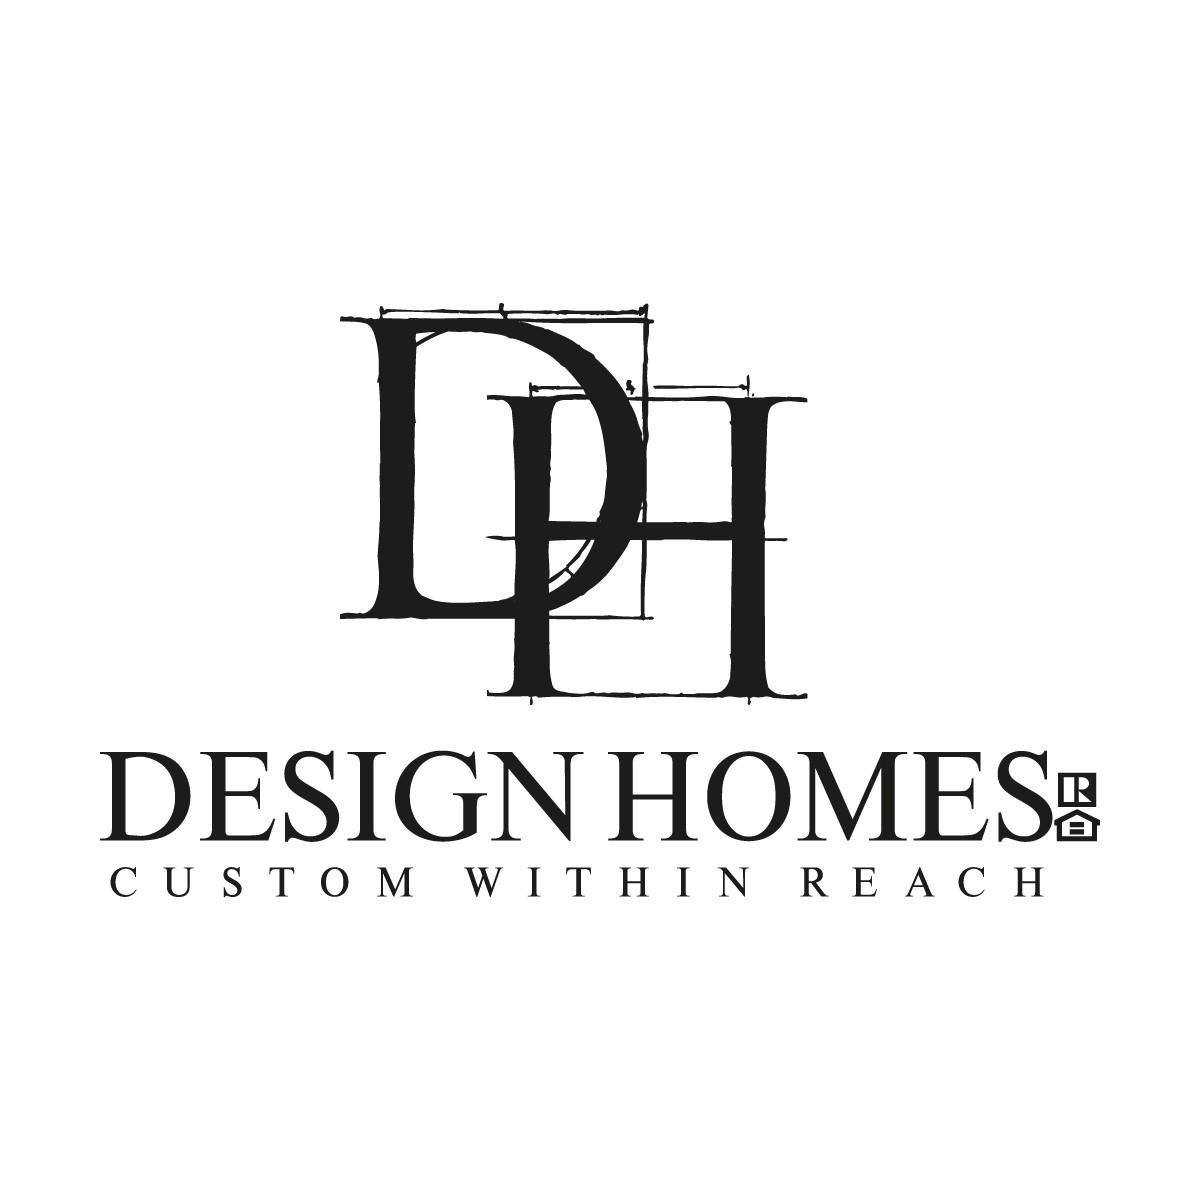 Design Homes U2013 Greater Dayton Custom Home Builders